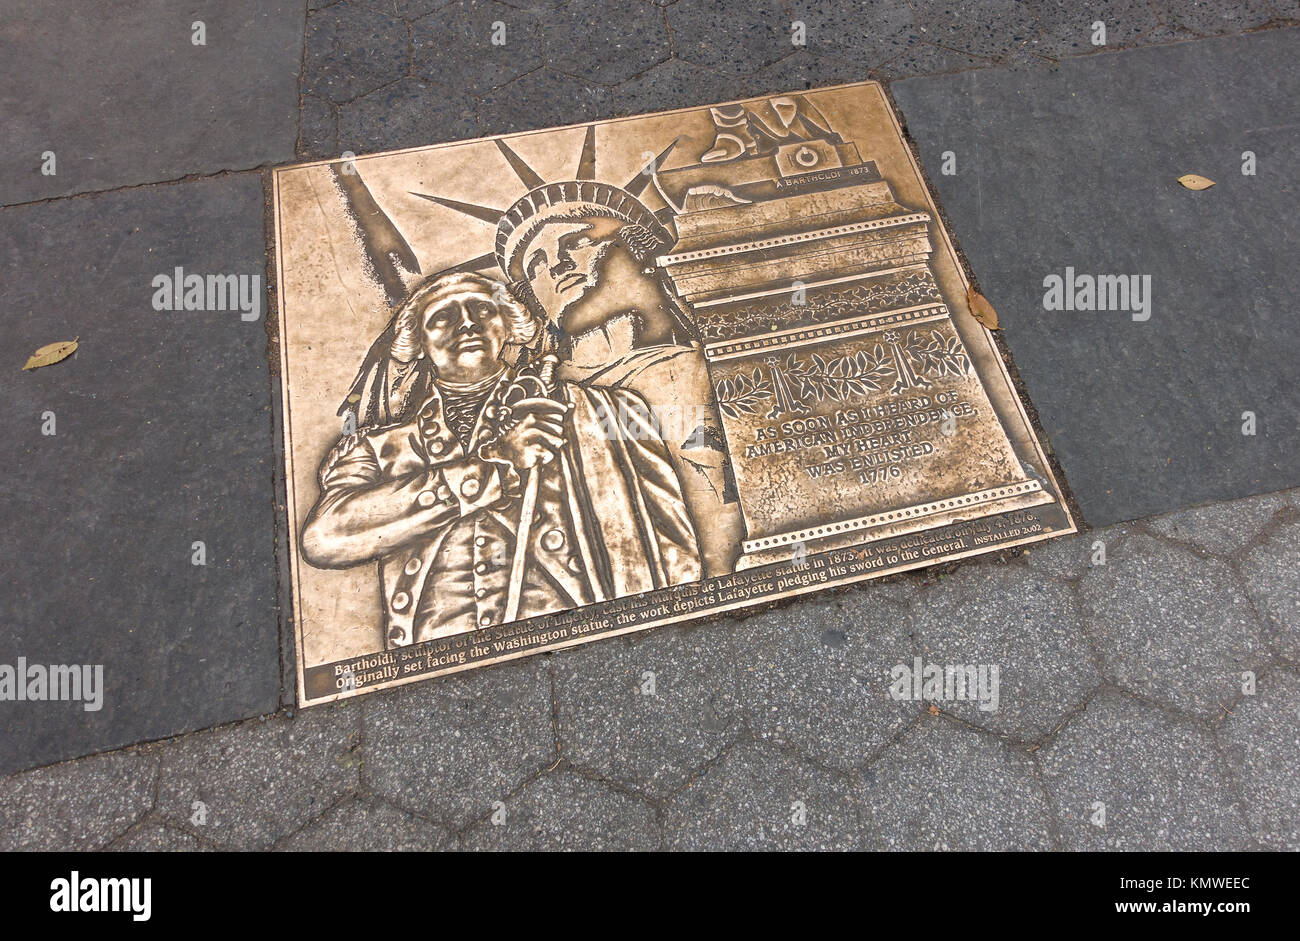 Golden colored plaque set in the grounds at Union Square, New York City, honoring Marquis de Lafayette for his help - Stock Image